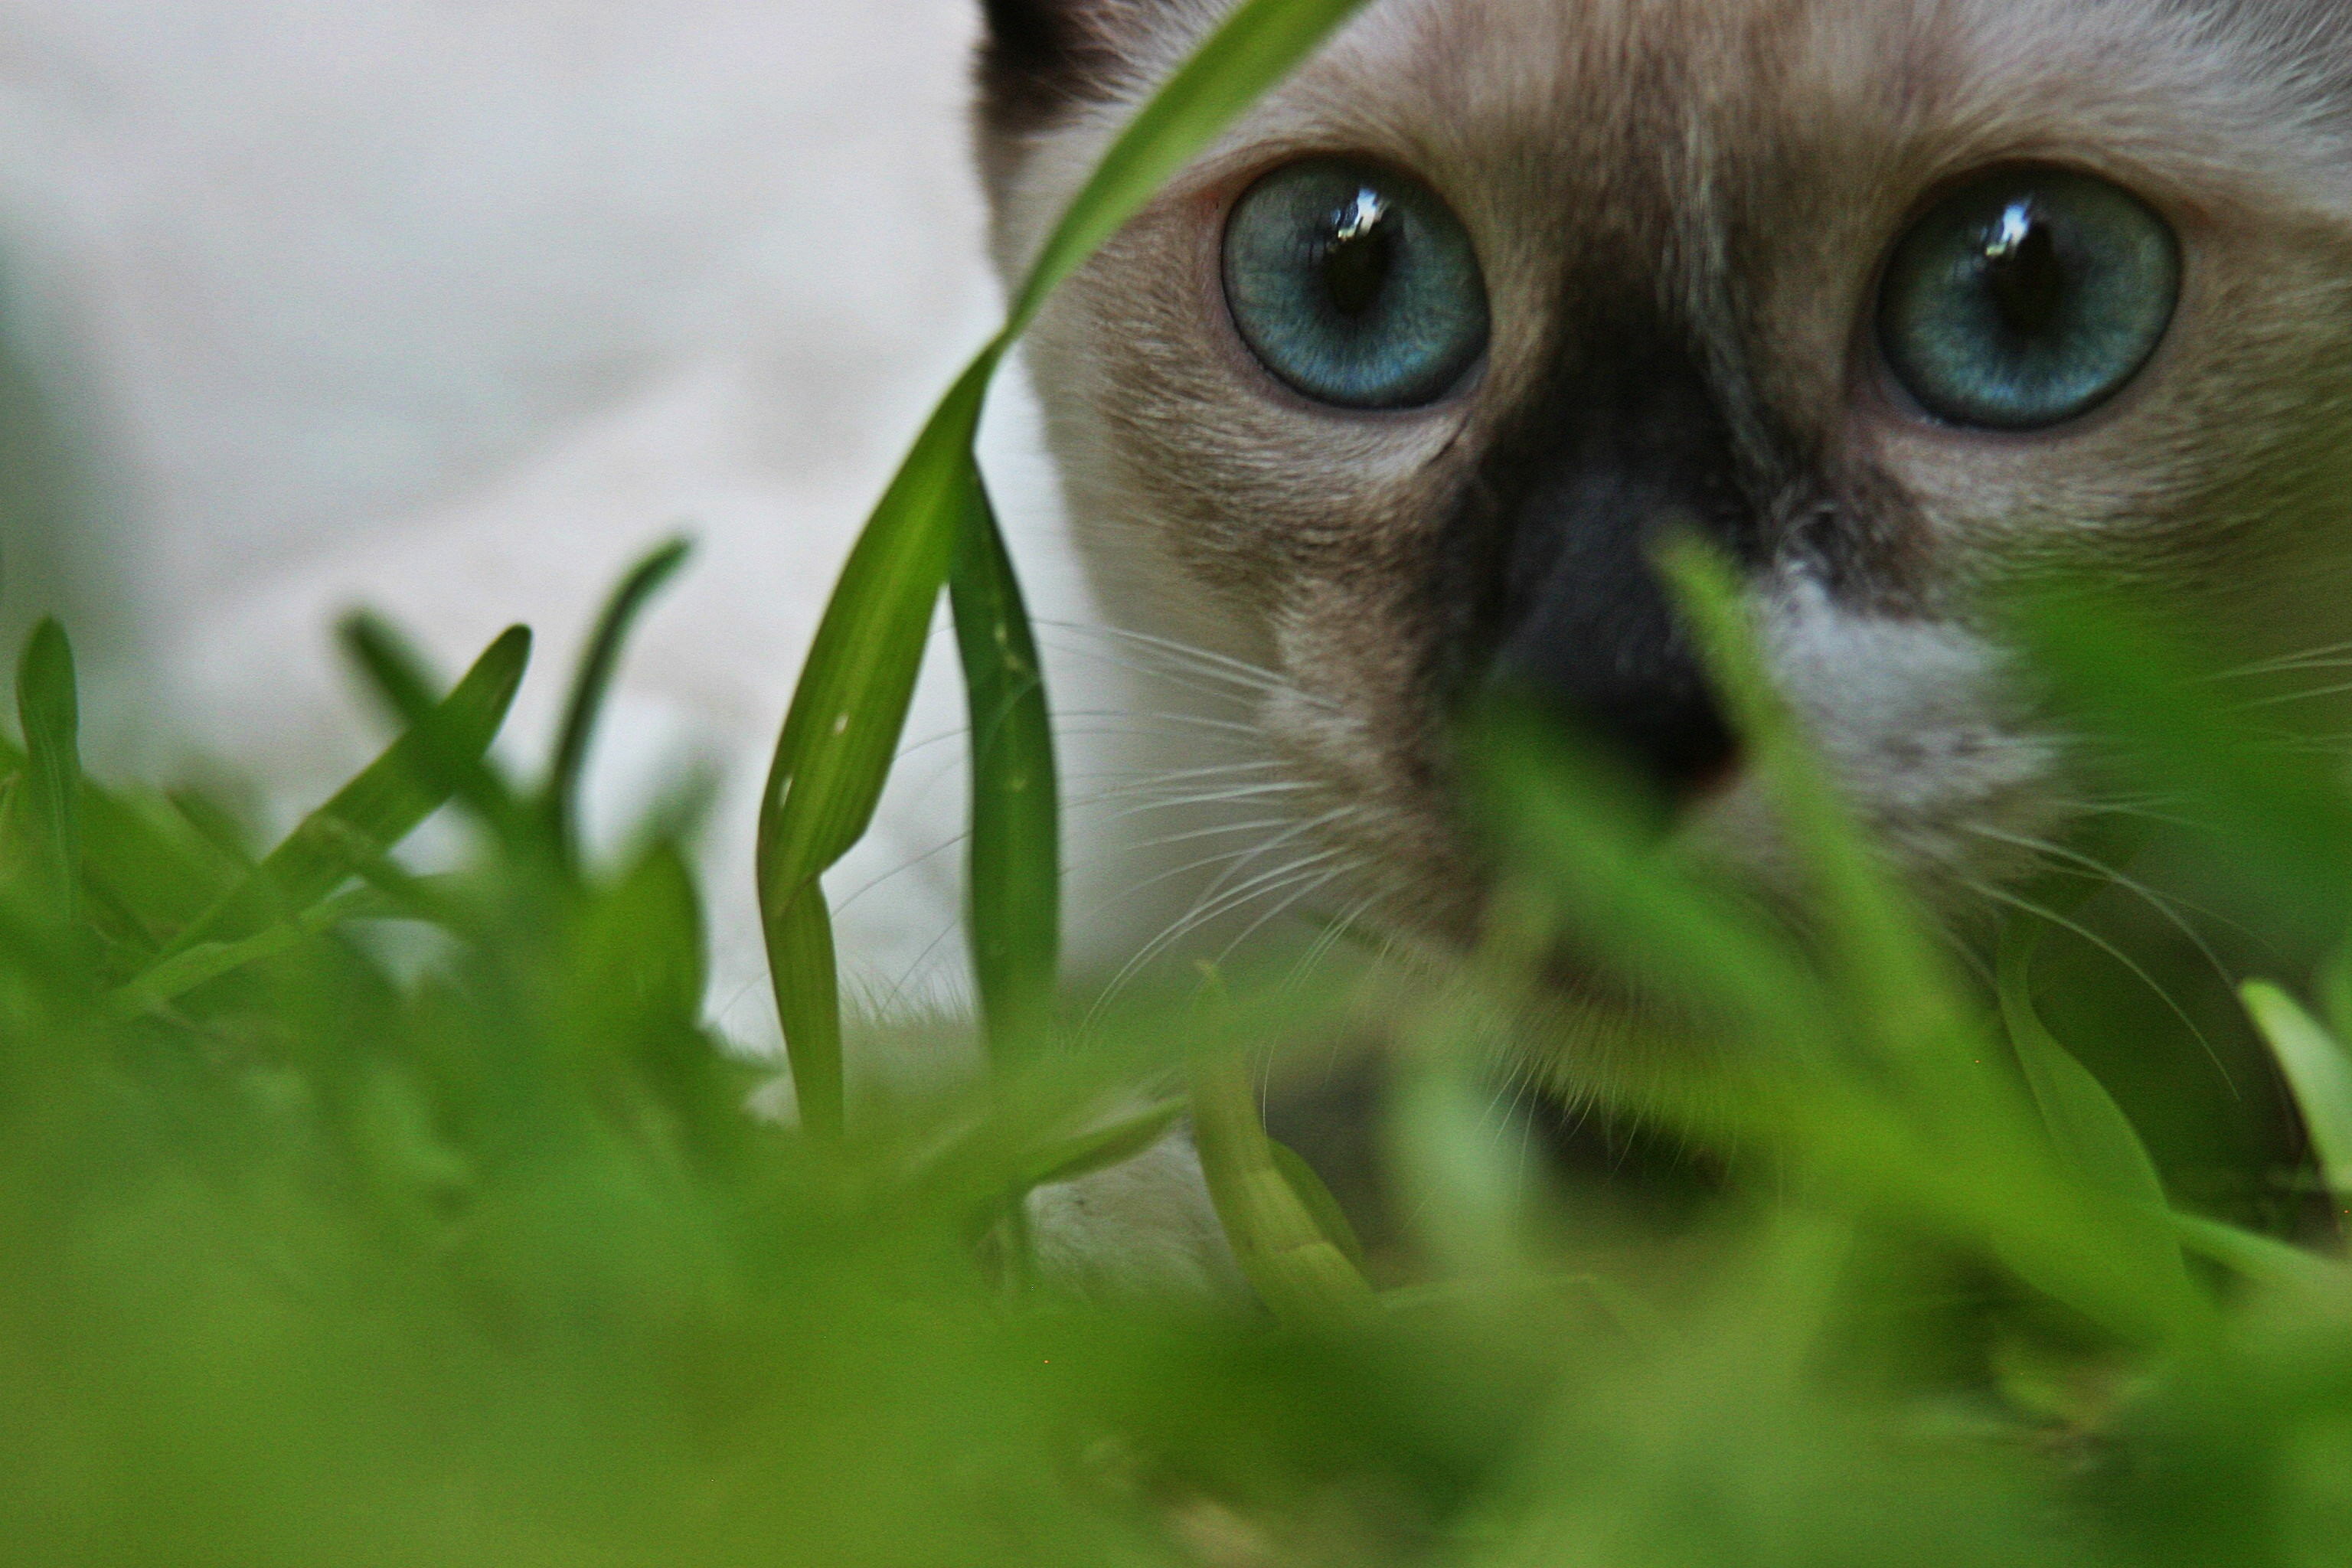 3072x2048 Siamese Cat Wallpapers | Siamese Cat Photos | Cool Wallpapers 2